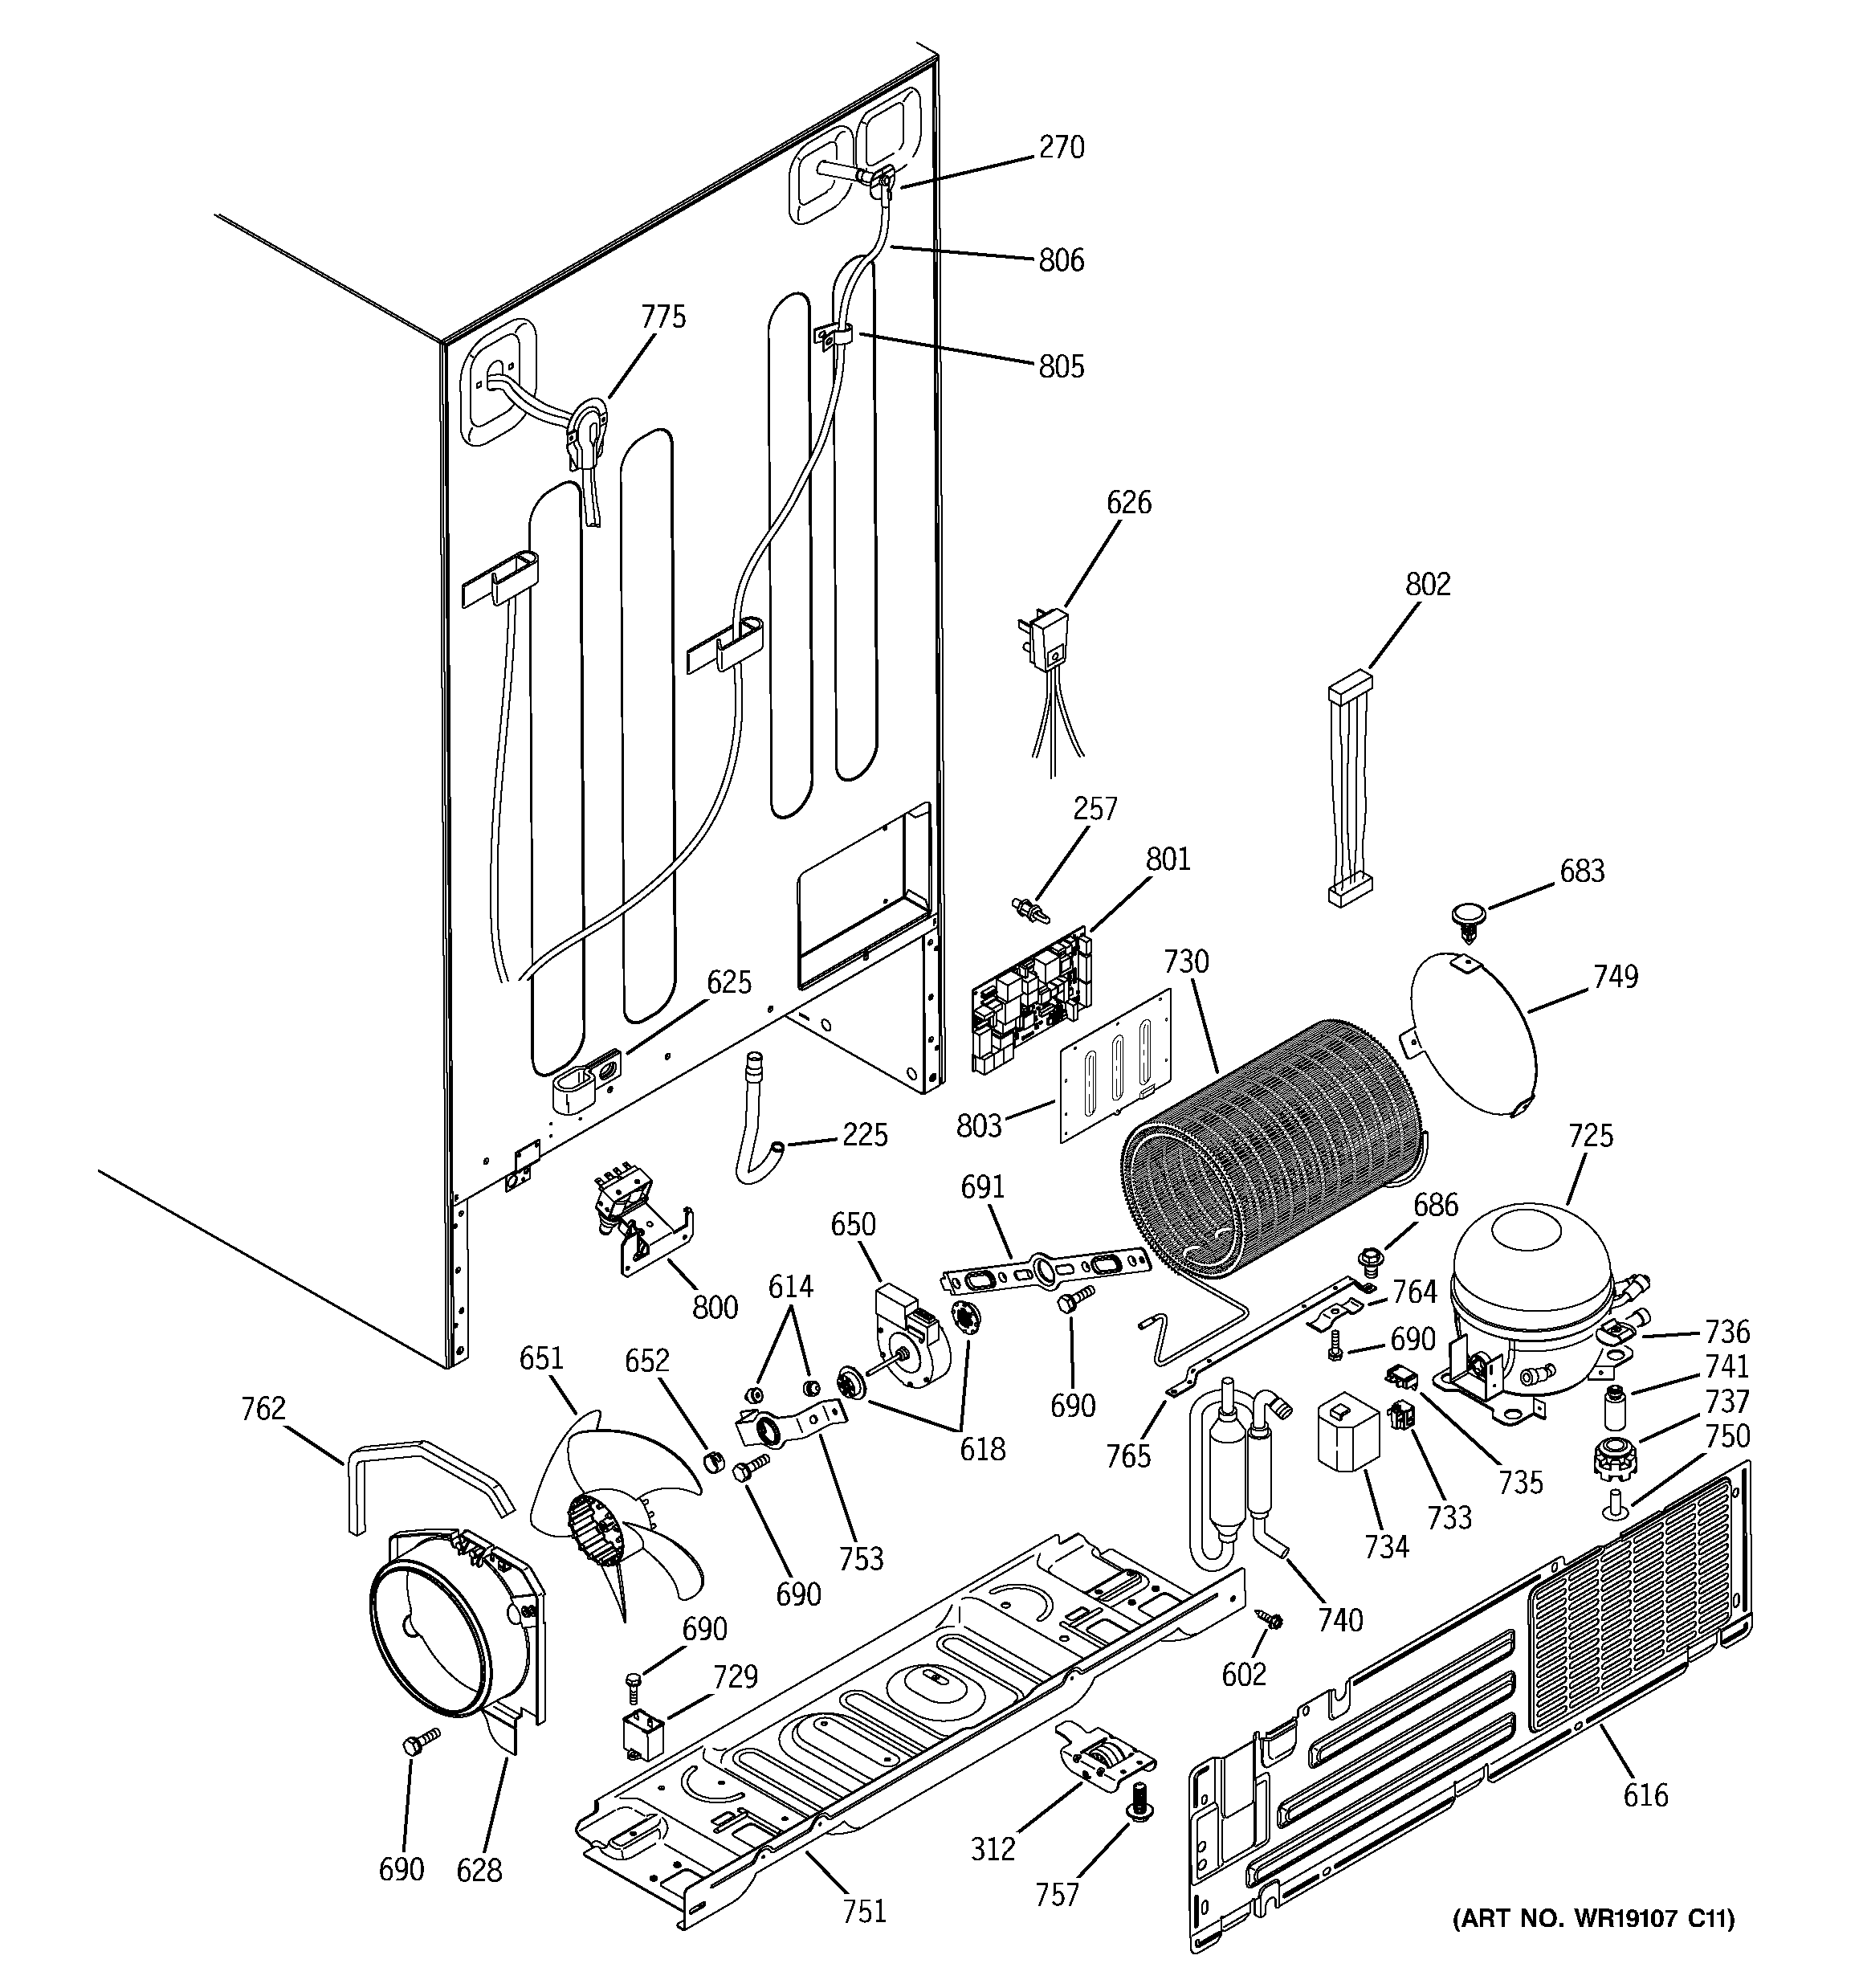 GE GSS25XGPBBB sealed system & mother board diagram